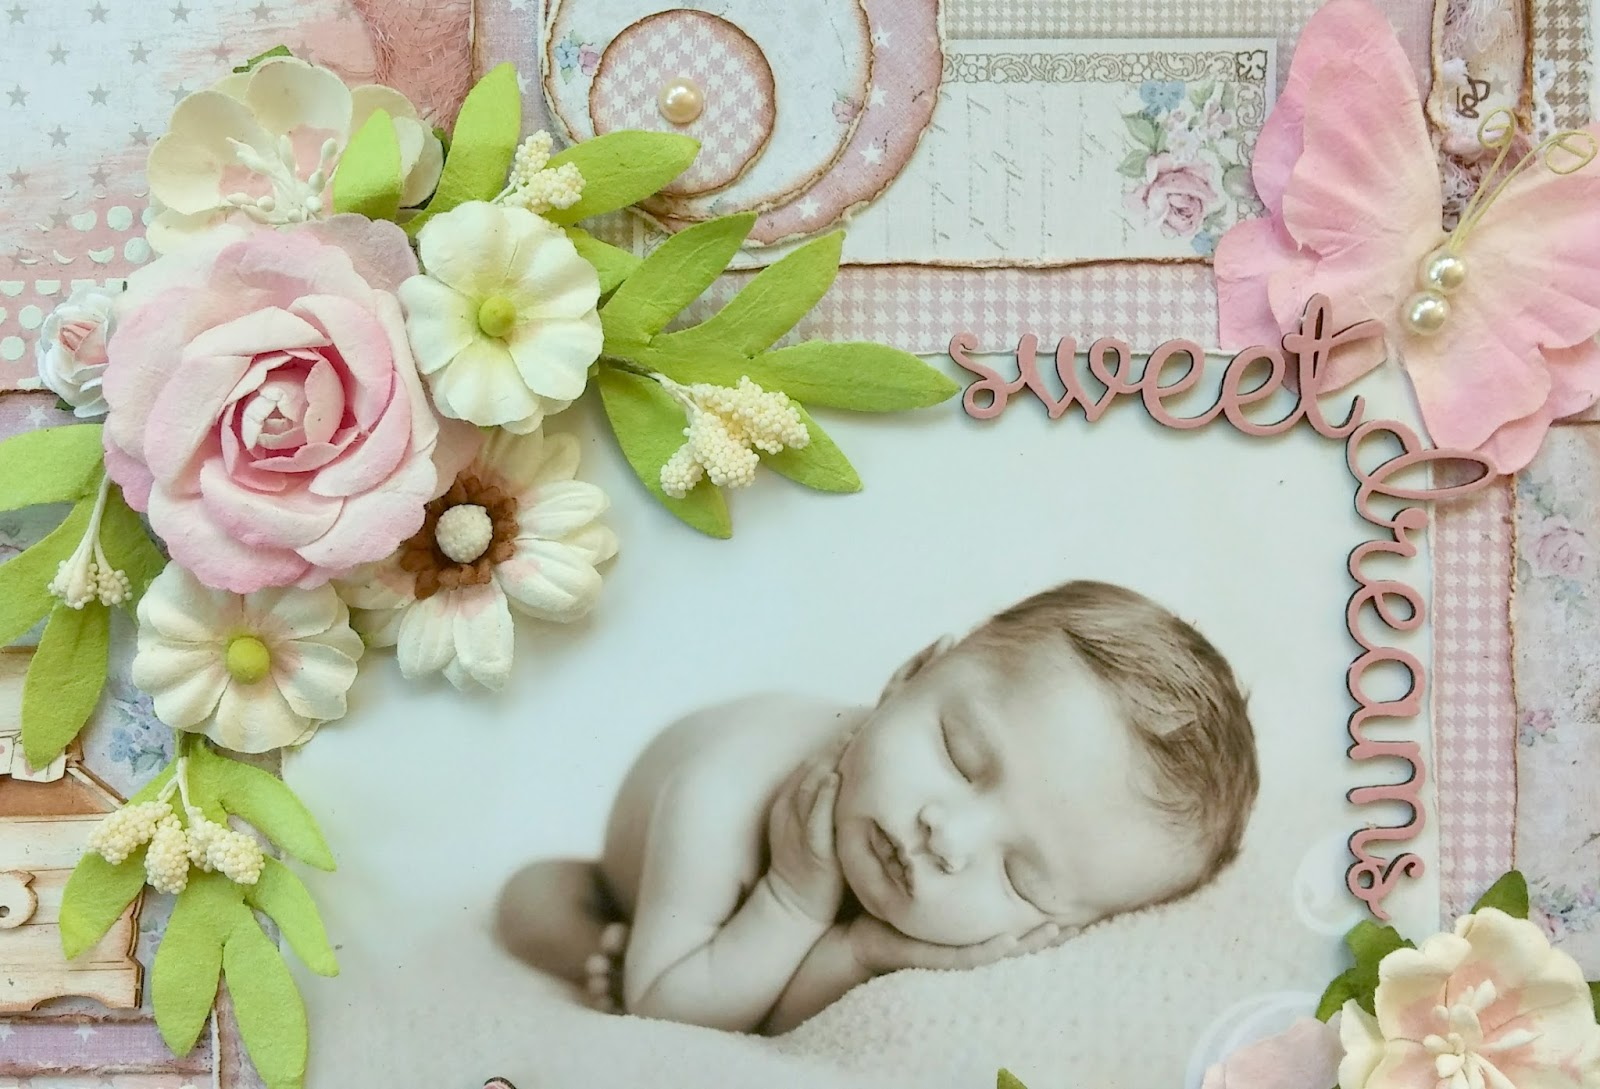 Scrapbook ideas for baby girl -  Look Into Your Baby Scrapbook Pages And At The Same Time One Of My Other Design Teams Dusty Attic Came Out With The Cutest Chippies For Baby Layouts